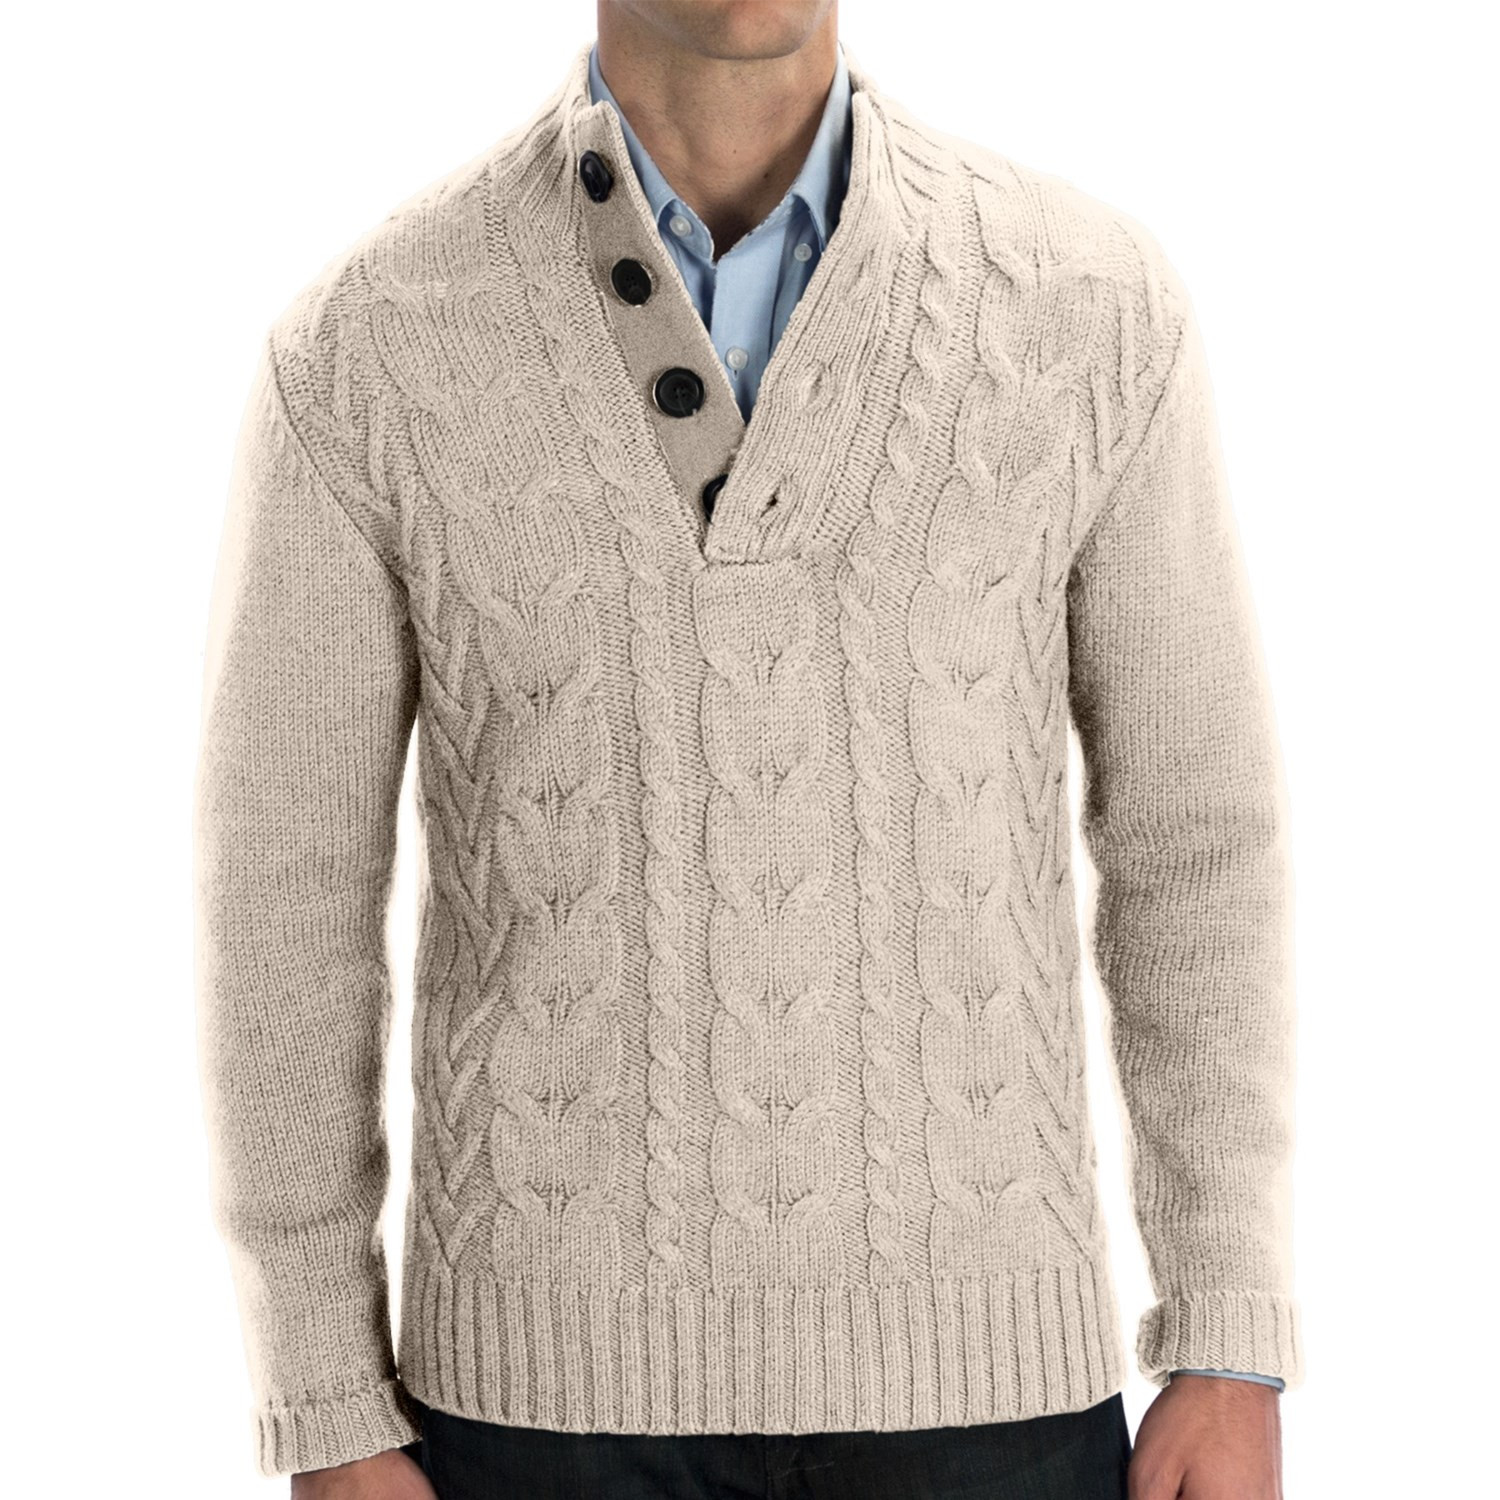 New Cable Knit Sweaters Patterns for Men Mens Cable Cardigan Of Top 48 Pics Mens Cable Cardigan